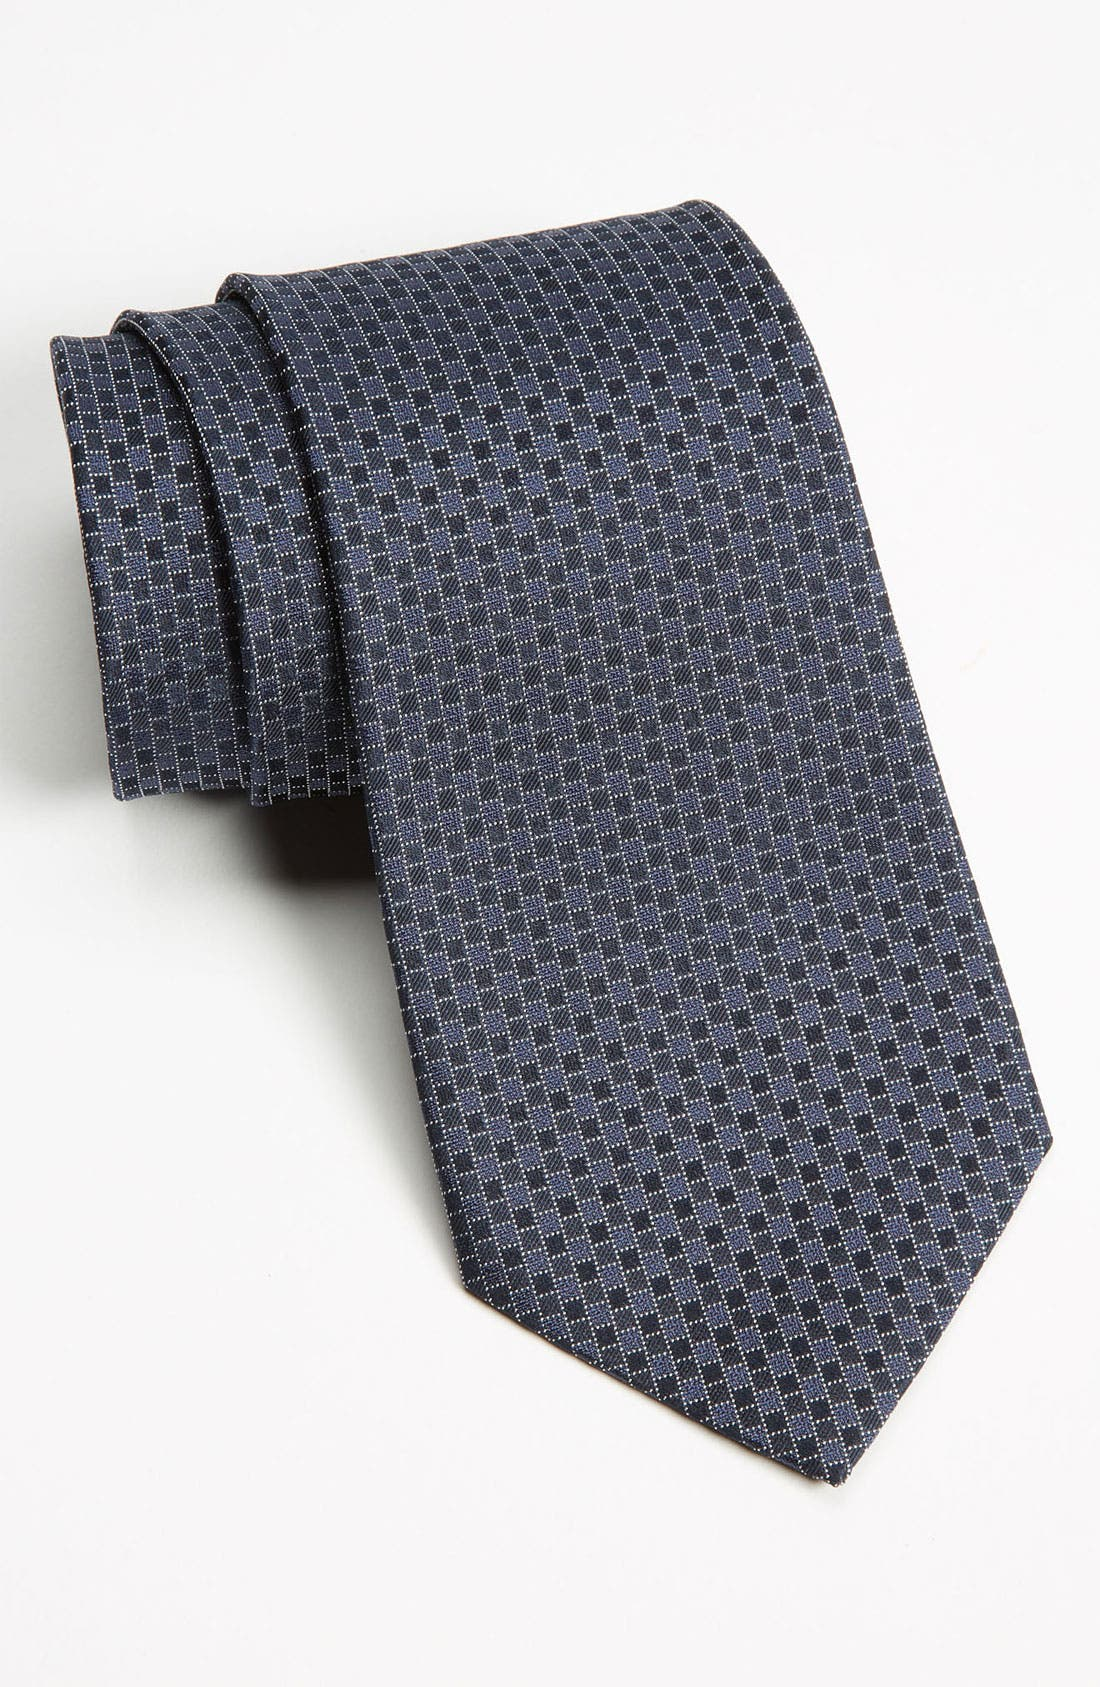 Alternate Image 1 Selected - Z Zegna Pattern Woven Silk Tie